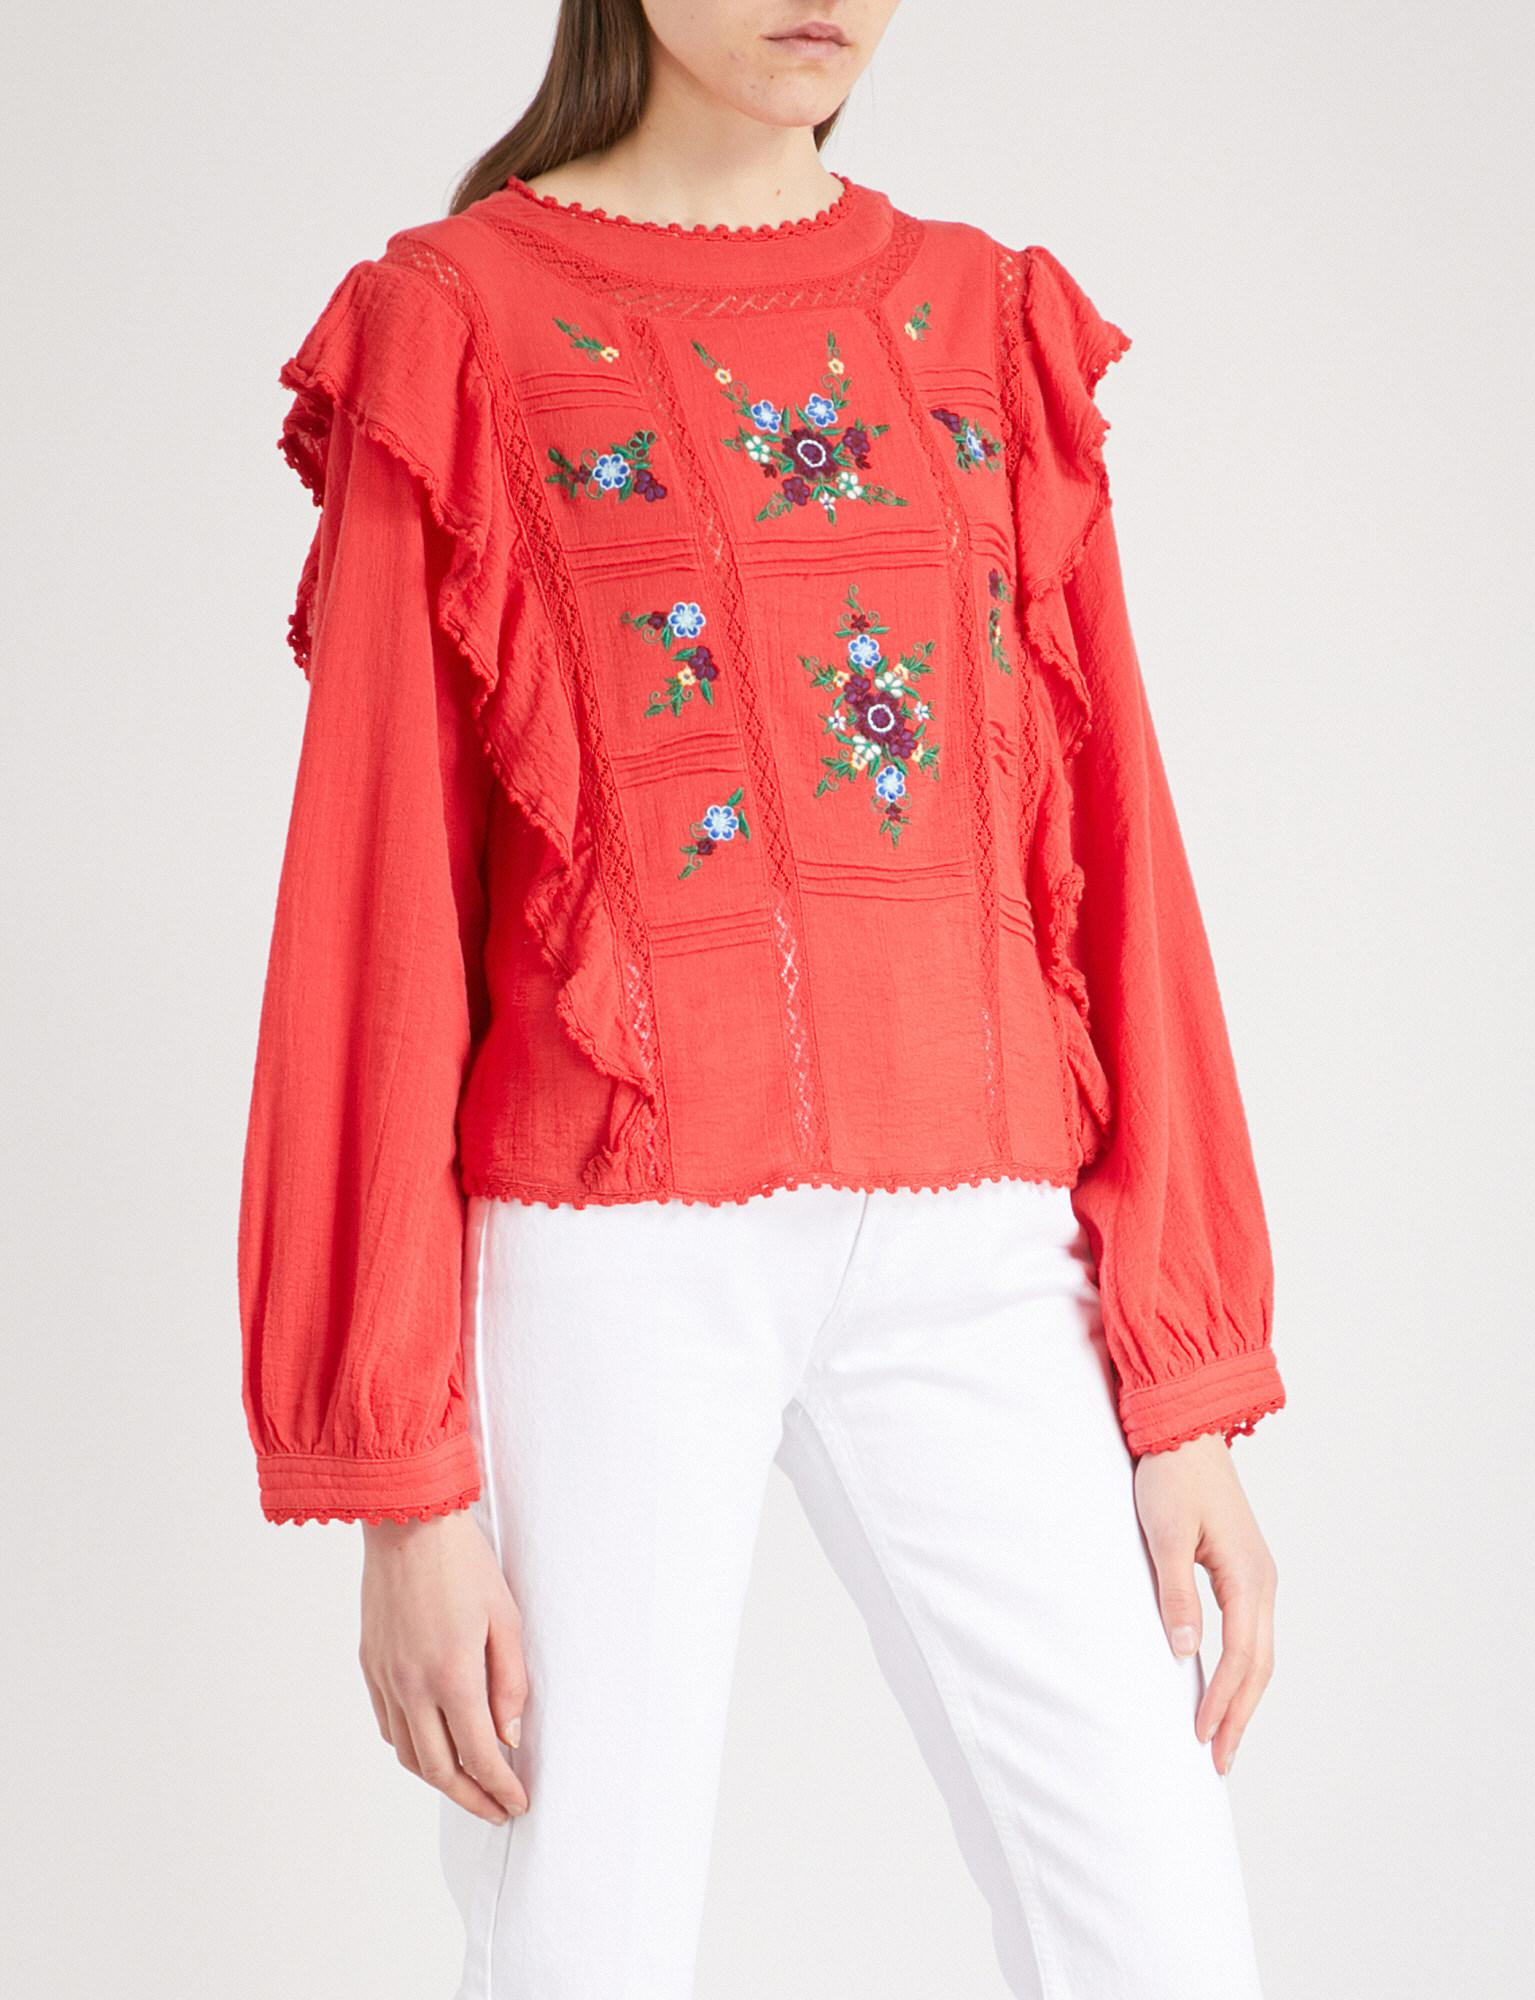 d6b0d4231d8243 Free People Amy Embroidered-floral Woven Top in Red - Lyst